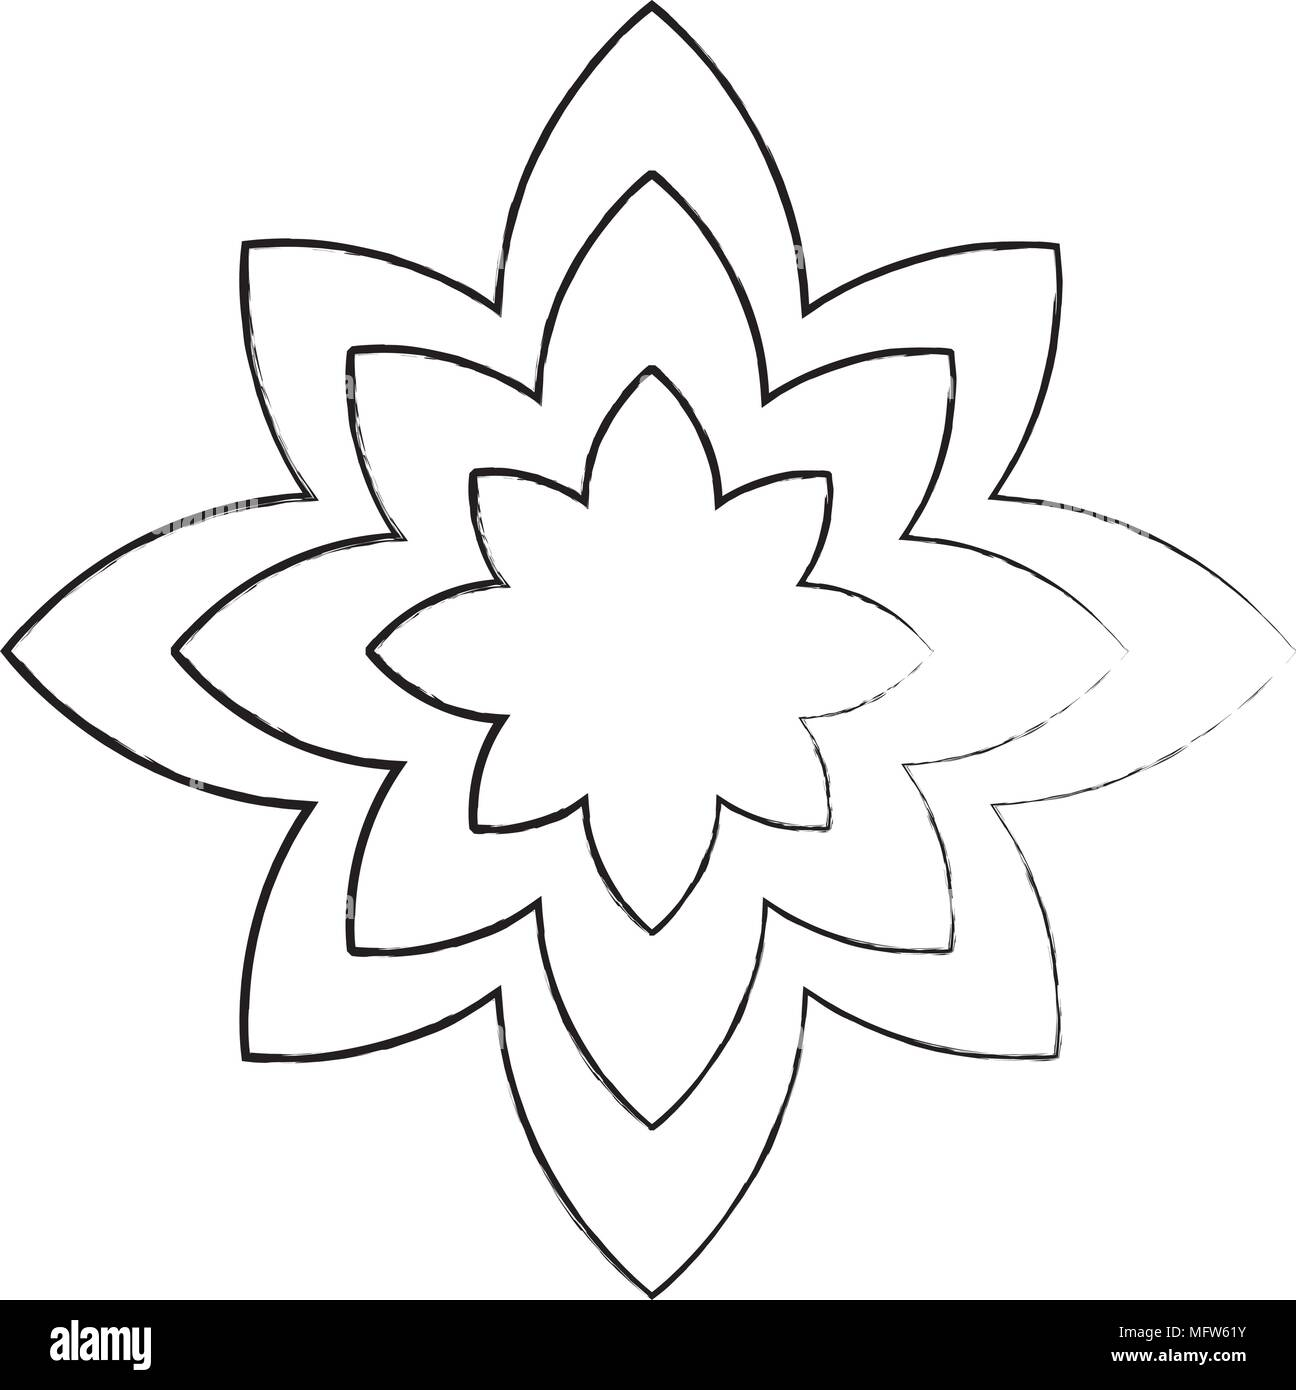 Sketch Of Lotus Flower Icon Yoga Symbol Over White Background Vector Illustration Stock Vector Image Art Alamy